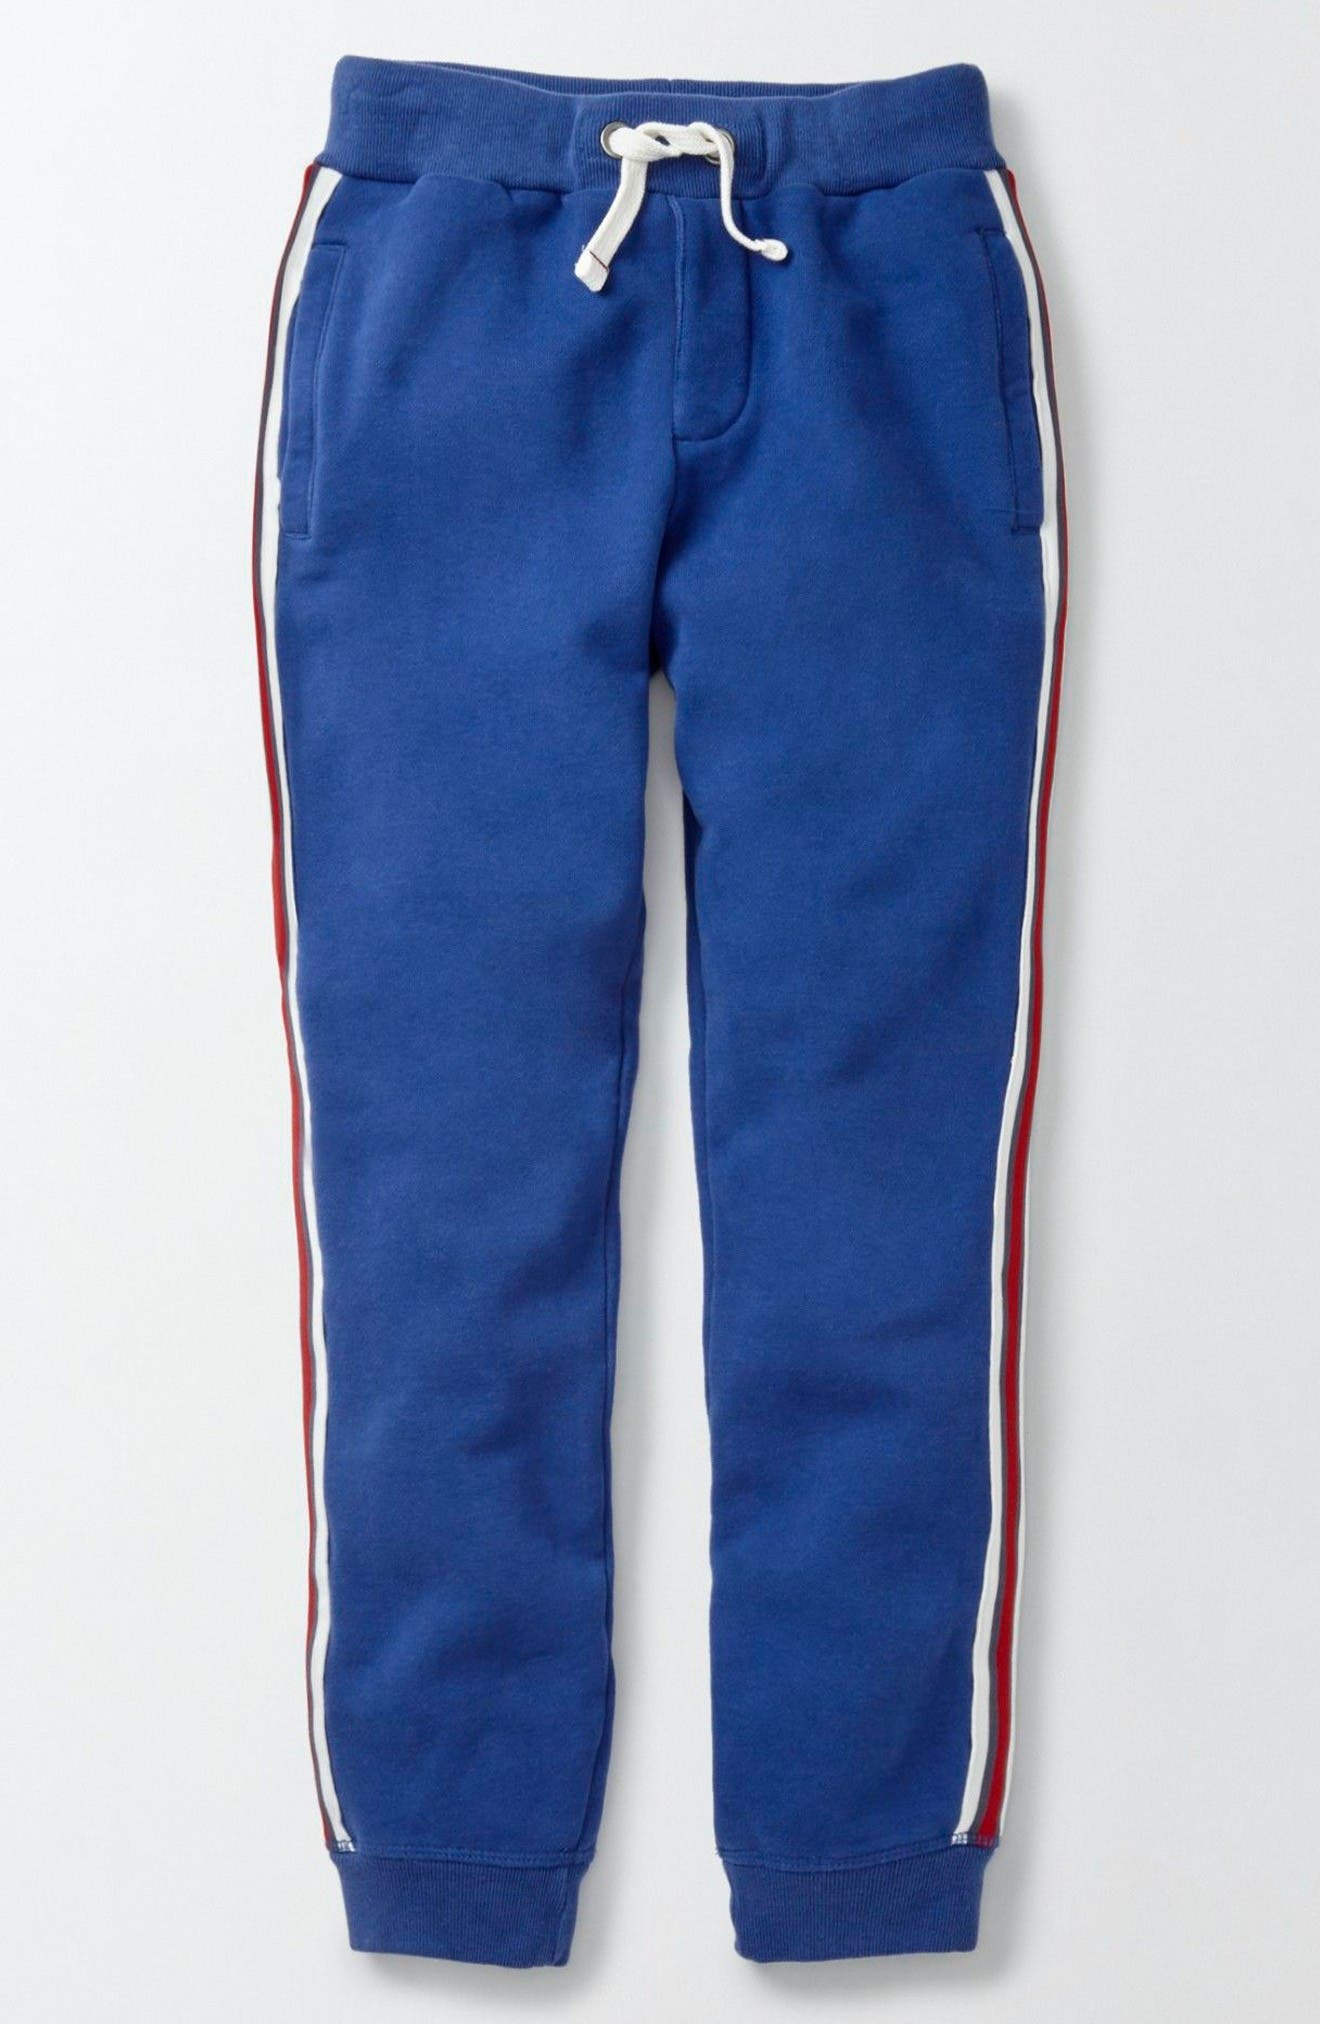 MINI BODEN Everyday Jogger Pants